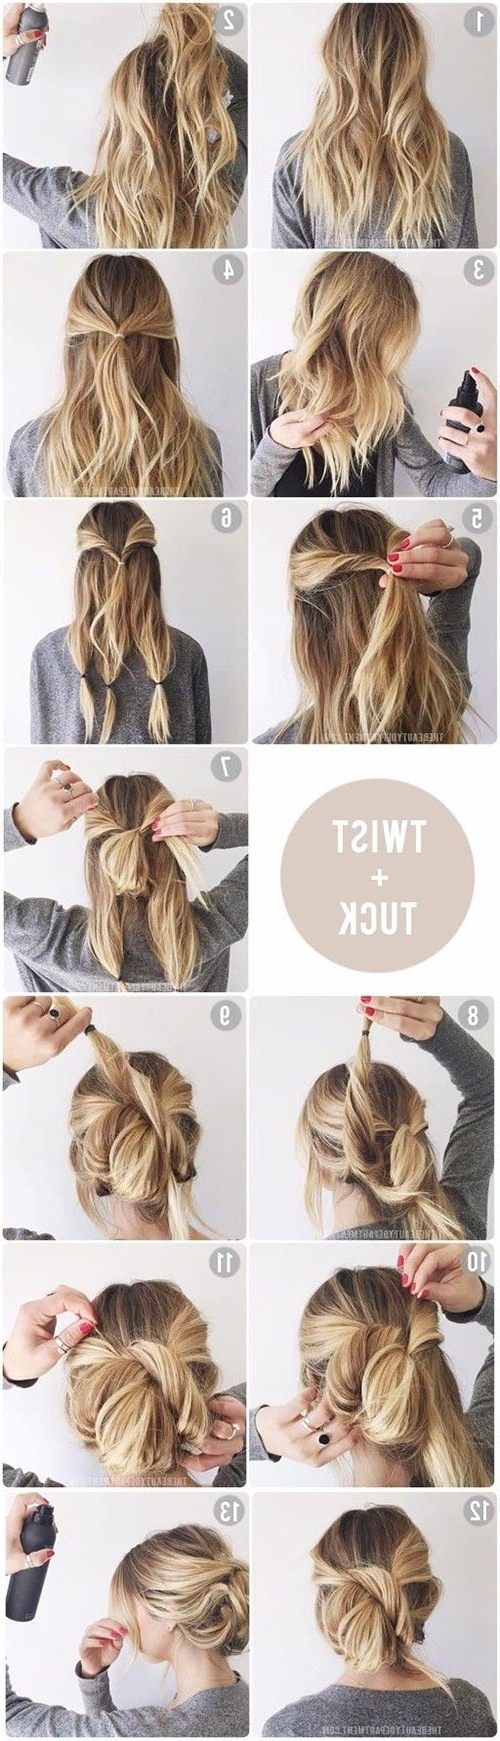 Top 10 Messy Updo Tutorials For Different Hair Lengths Intended For Diy Updo Hairstyles For Long Hair (View 15 of 15)